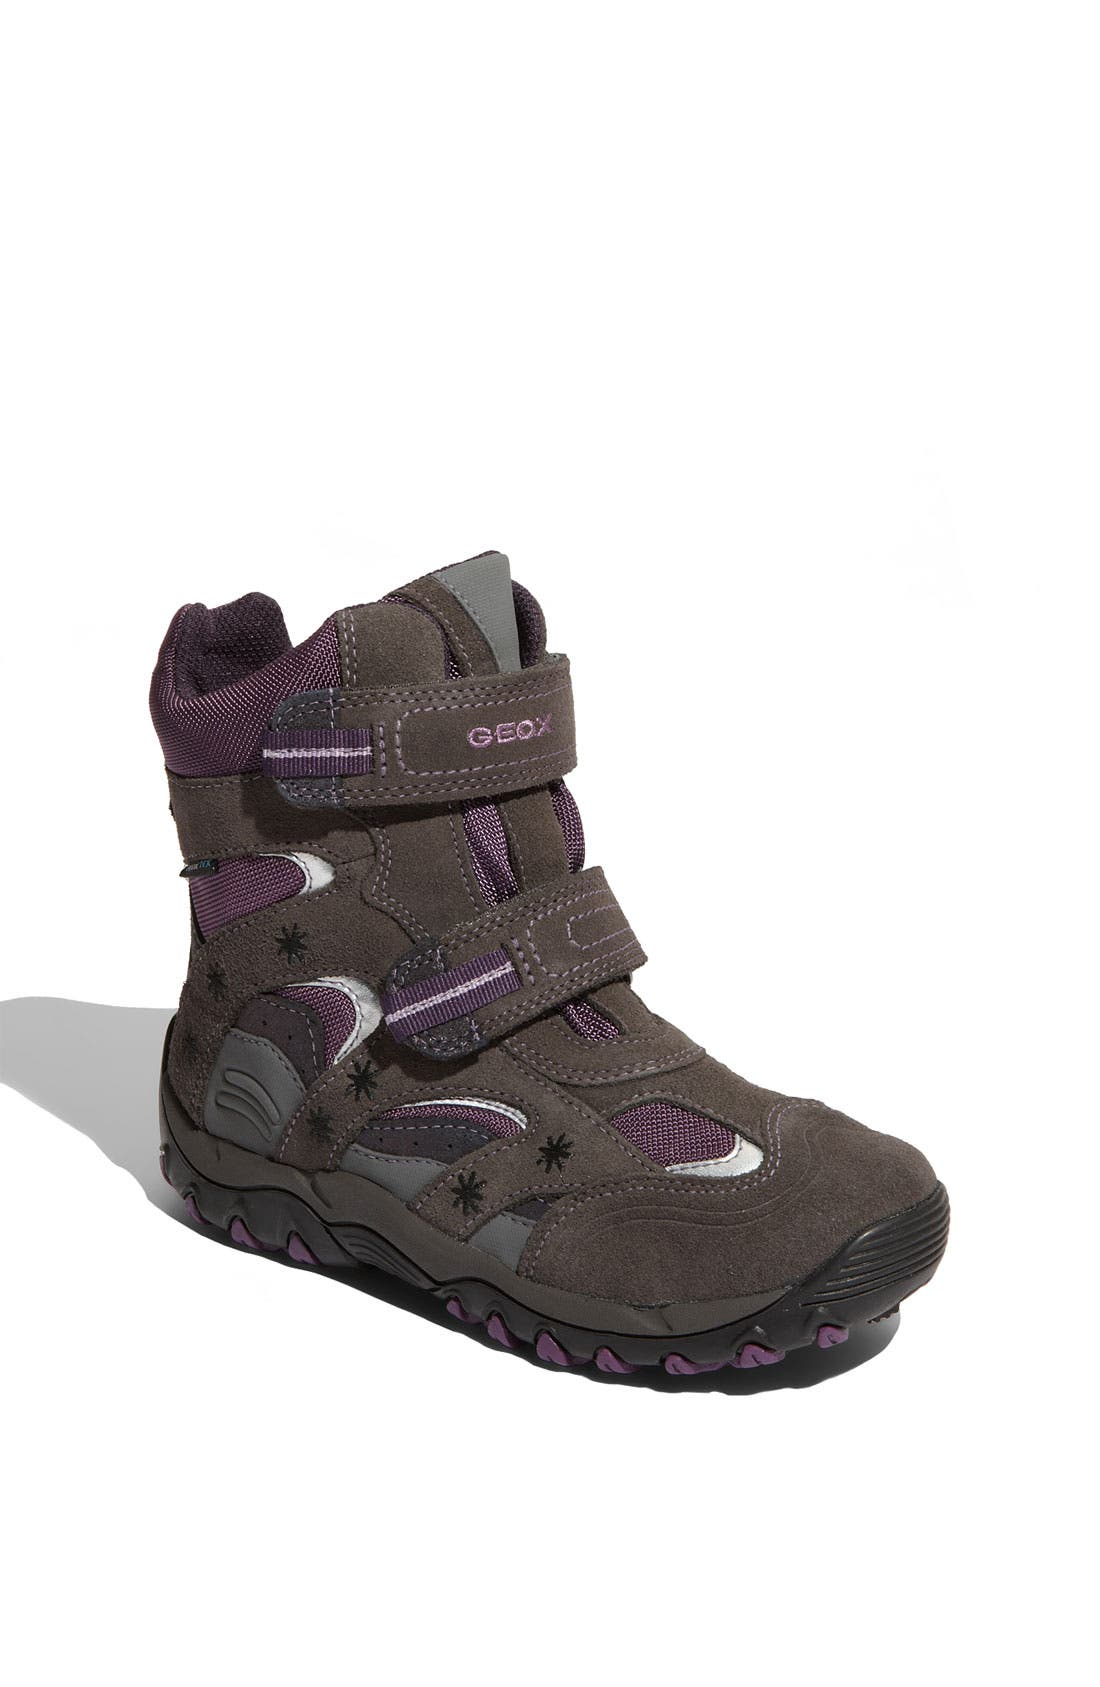 Main Image - Geox 'Alaska' Boot (Toddler, Little Kid & Big Kid)